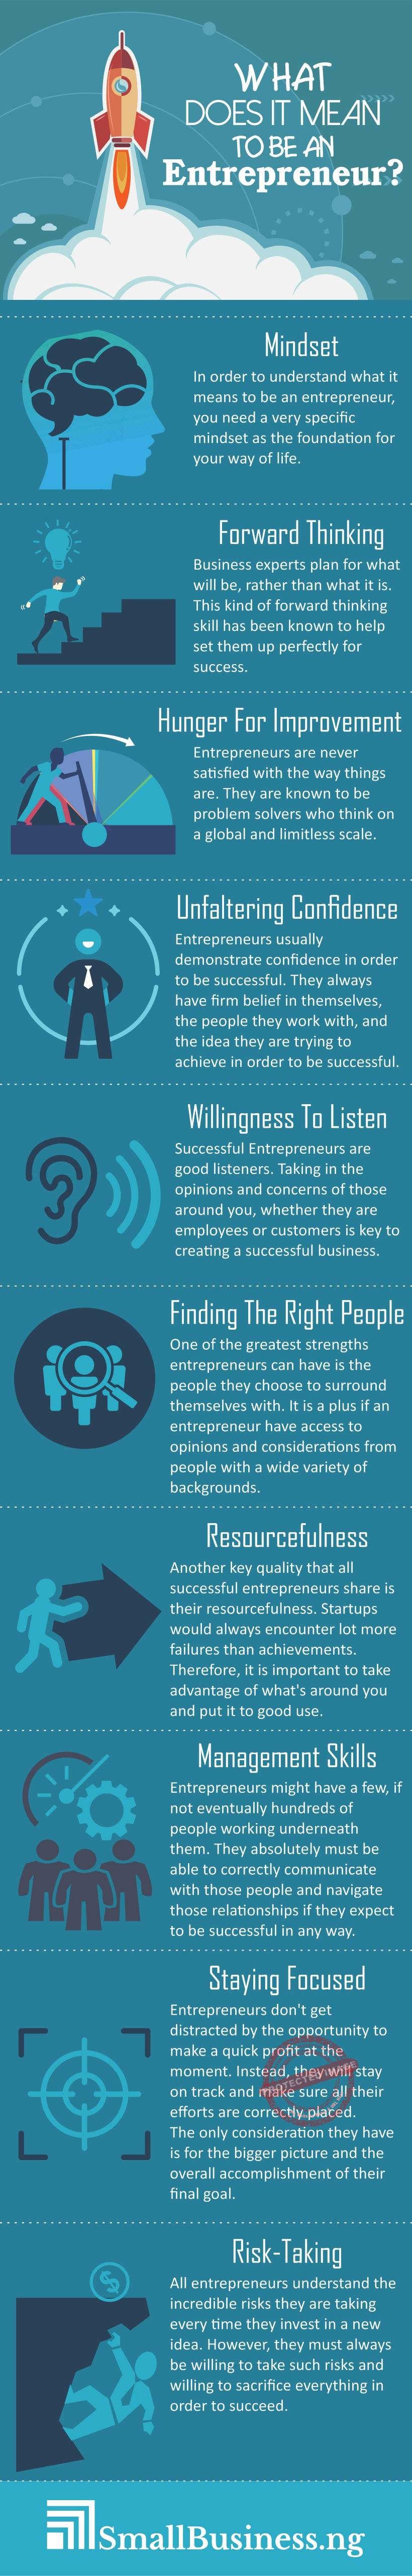 What Does It Mean To Be An Entrepreneur Infographic